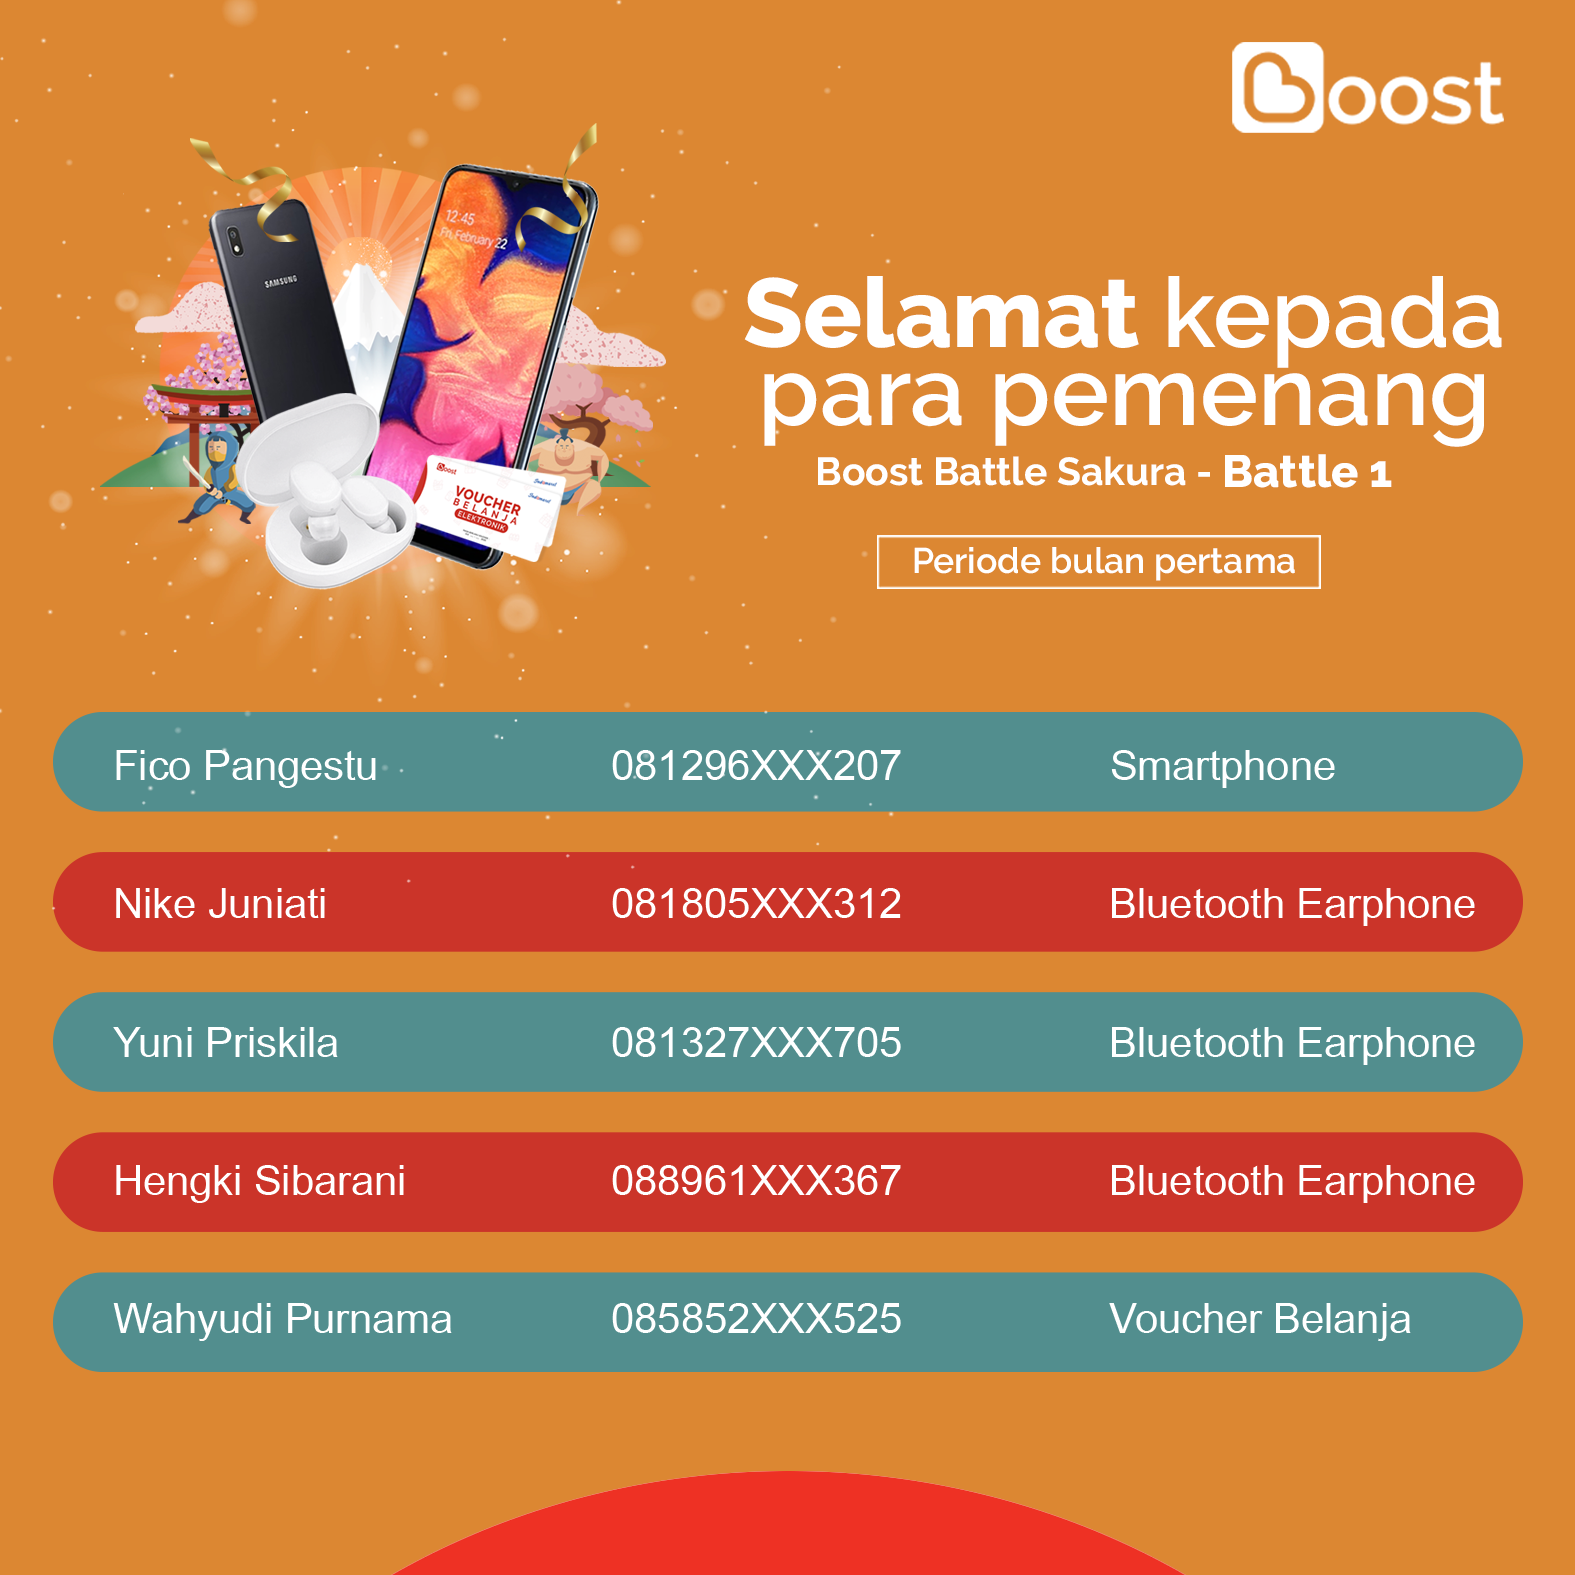 PEMENANG_BOOST_BATTLE_1_b.png